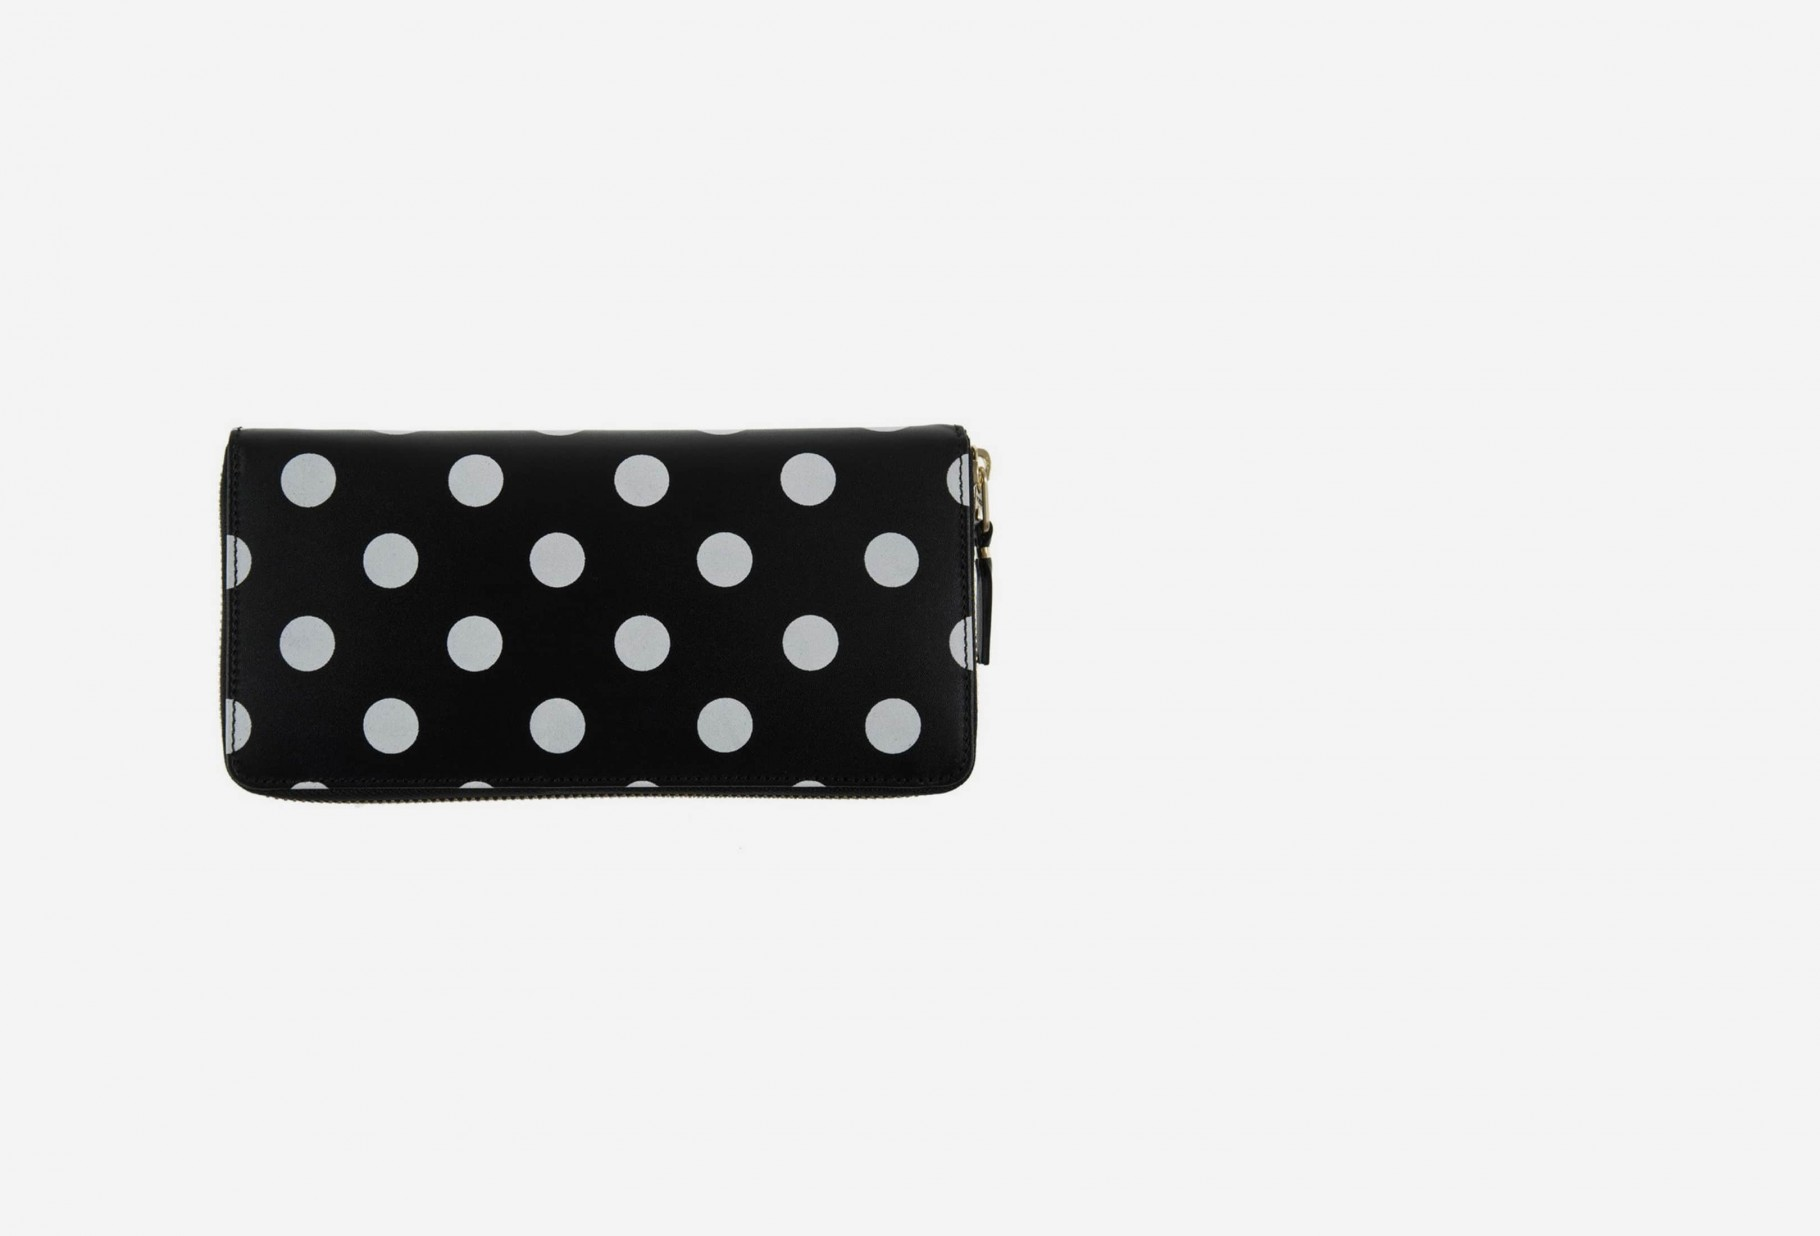 CDG WALLETS FOR WOMAN / Cdg polka dots sa0110pd Black